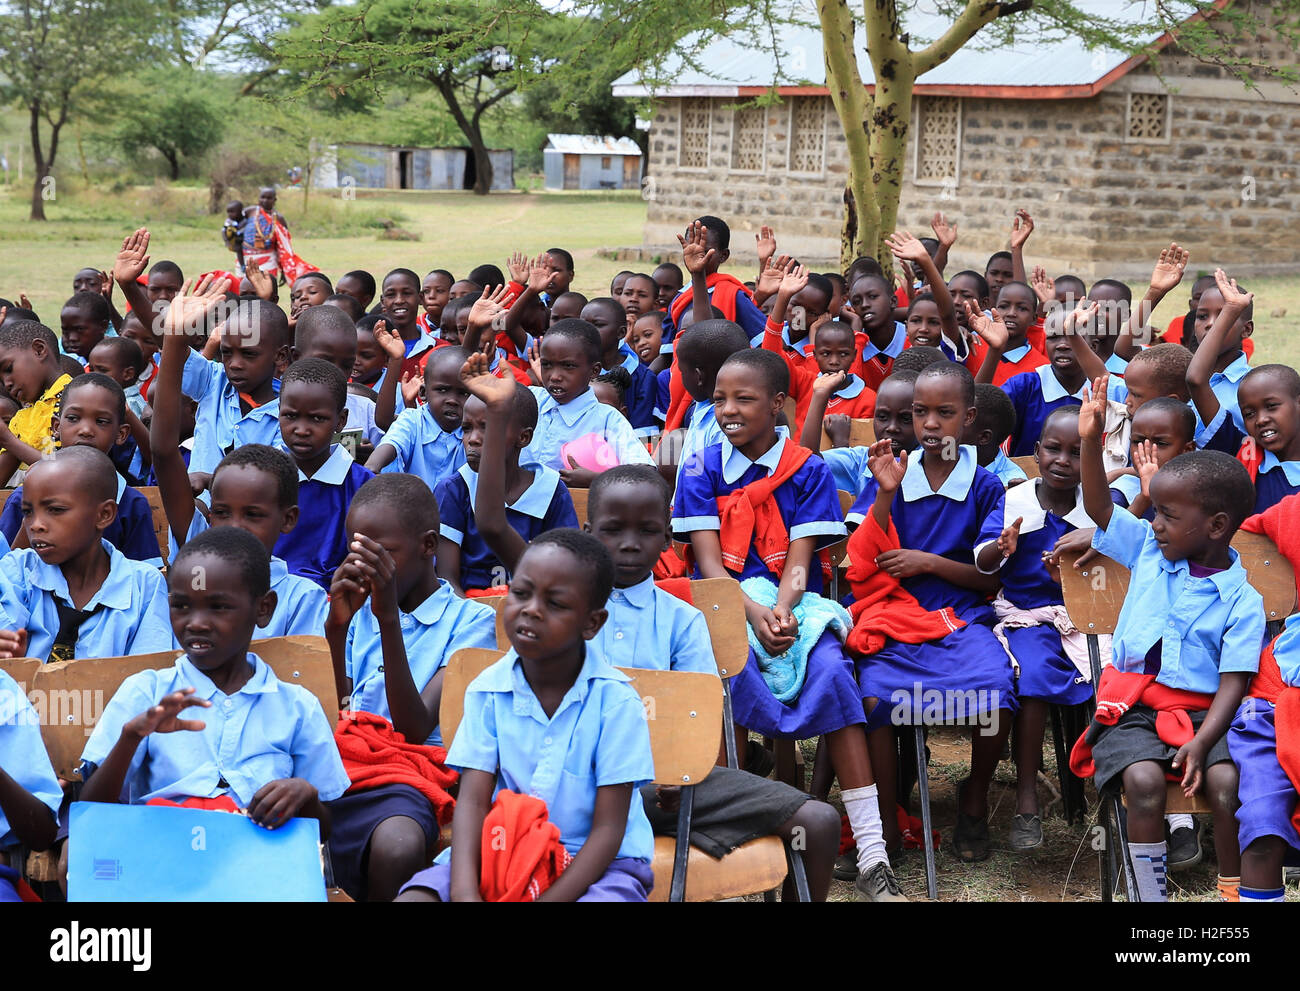 Kajiado, Kenya. 28th Oct, 2016. Students attend the ceremony for the last day of school term at Olgumi primary school, Stock Photo